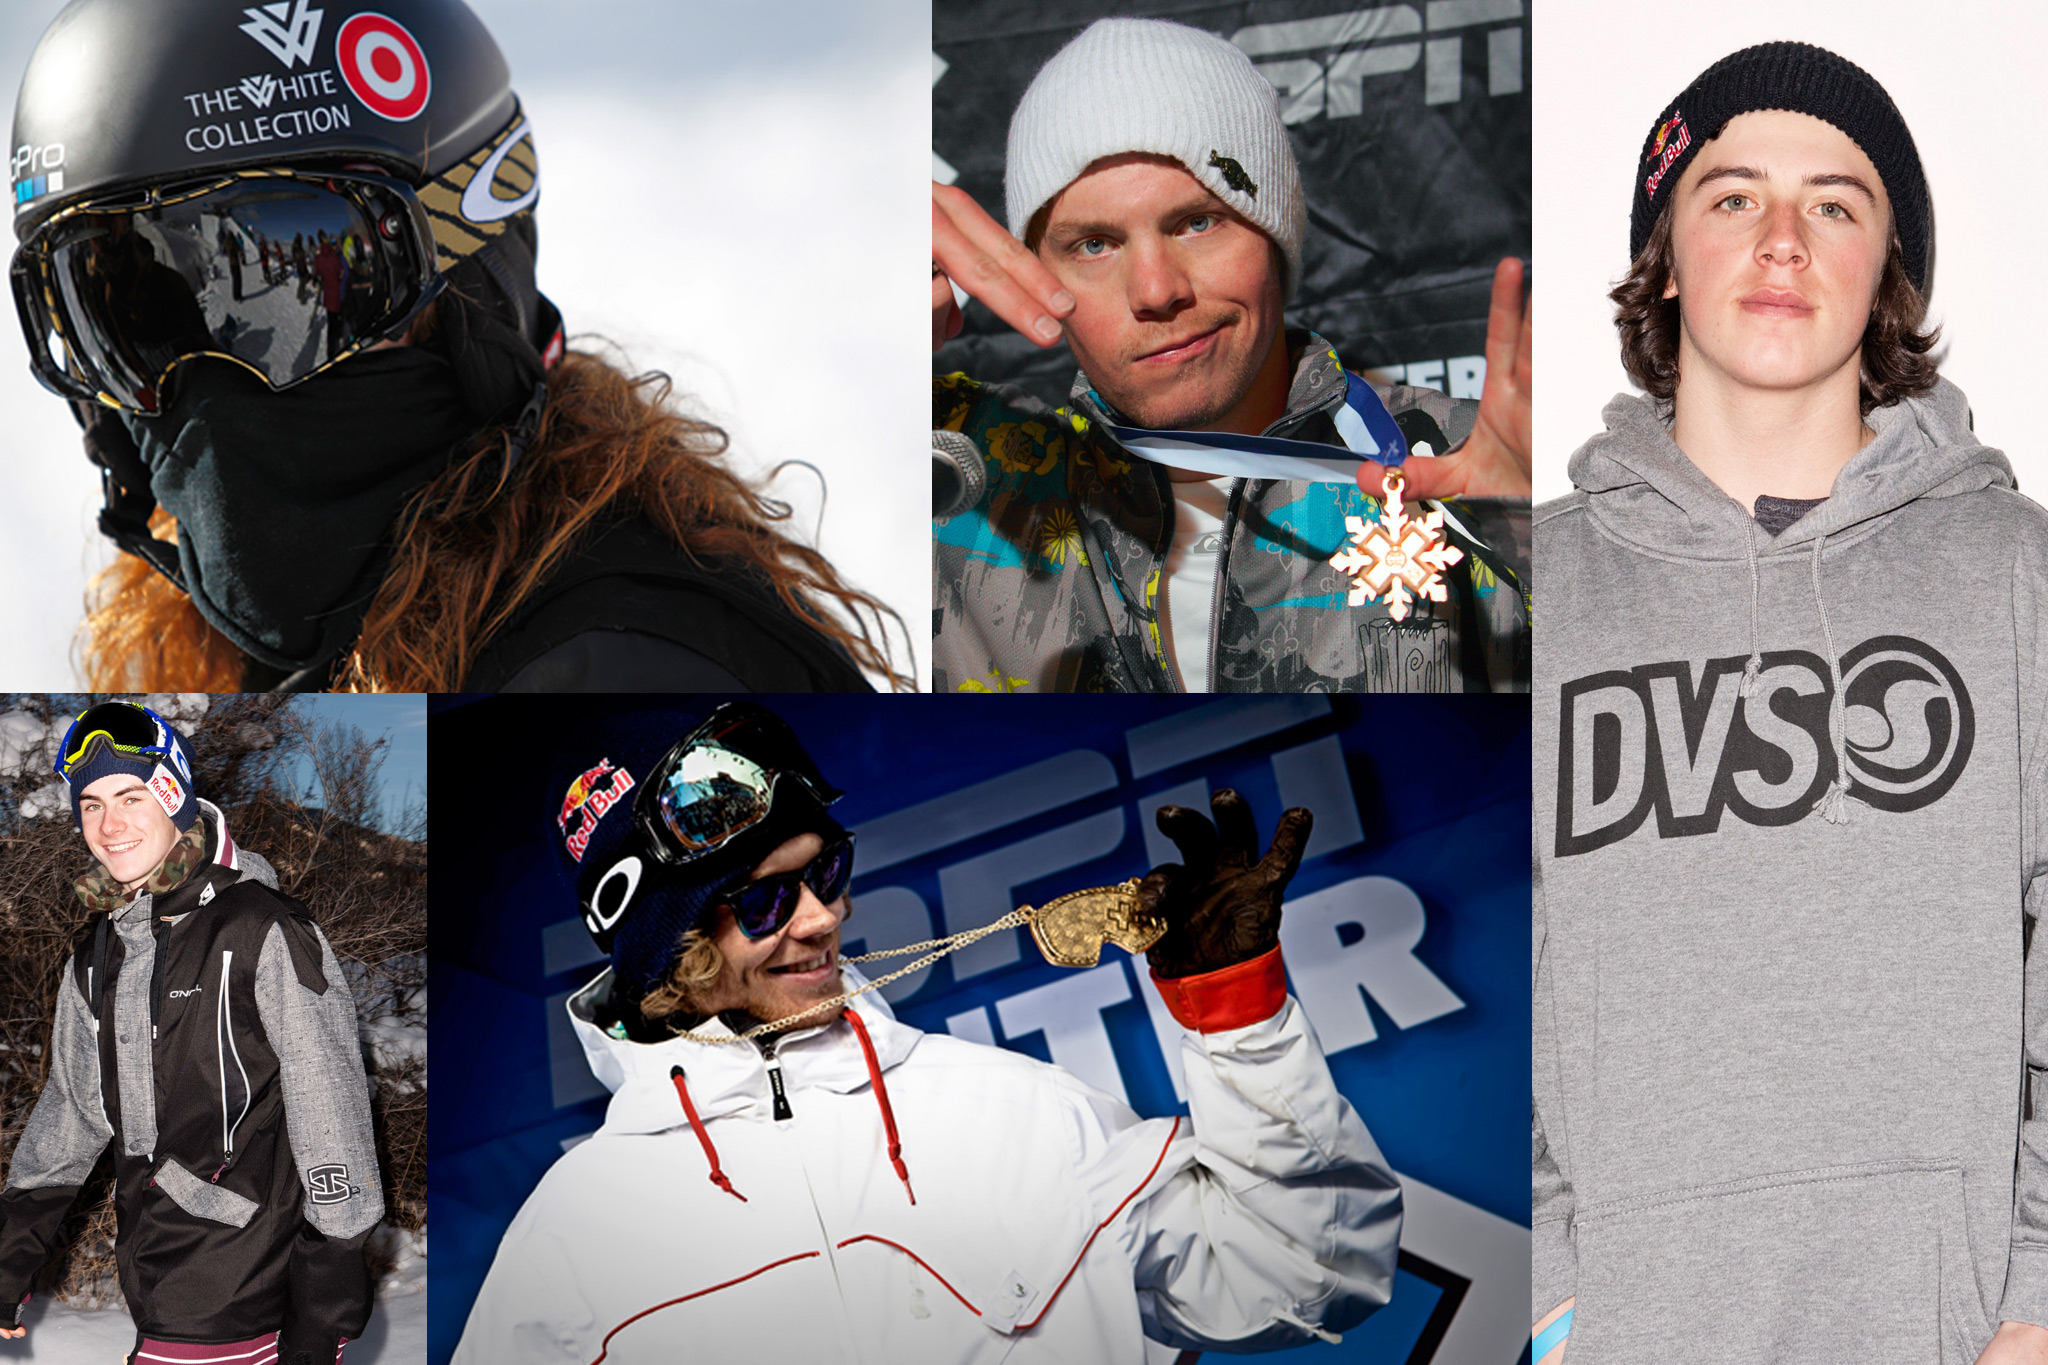 Because of its inclusion in the 2014 Winter Olympics, the world will soon come to know (and possibly love) the slopestyle side of snowboarding, and the riders who are best at it. But the discipline has been around for a long time, and always had its heroes. Here's a look back at some who made history at the X Games.